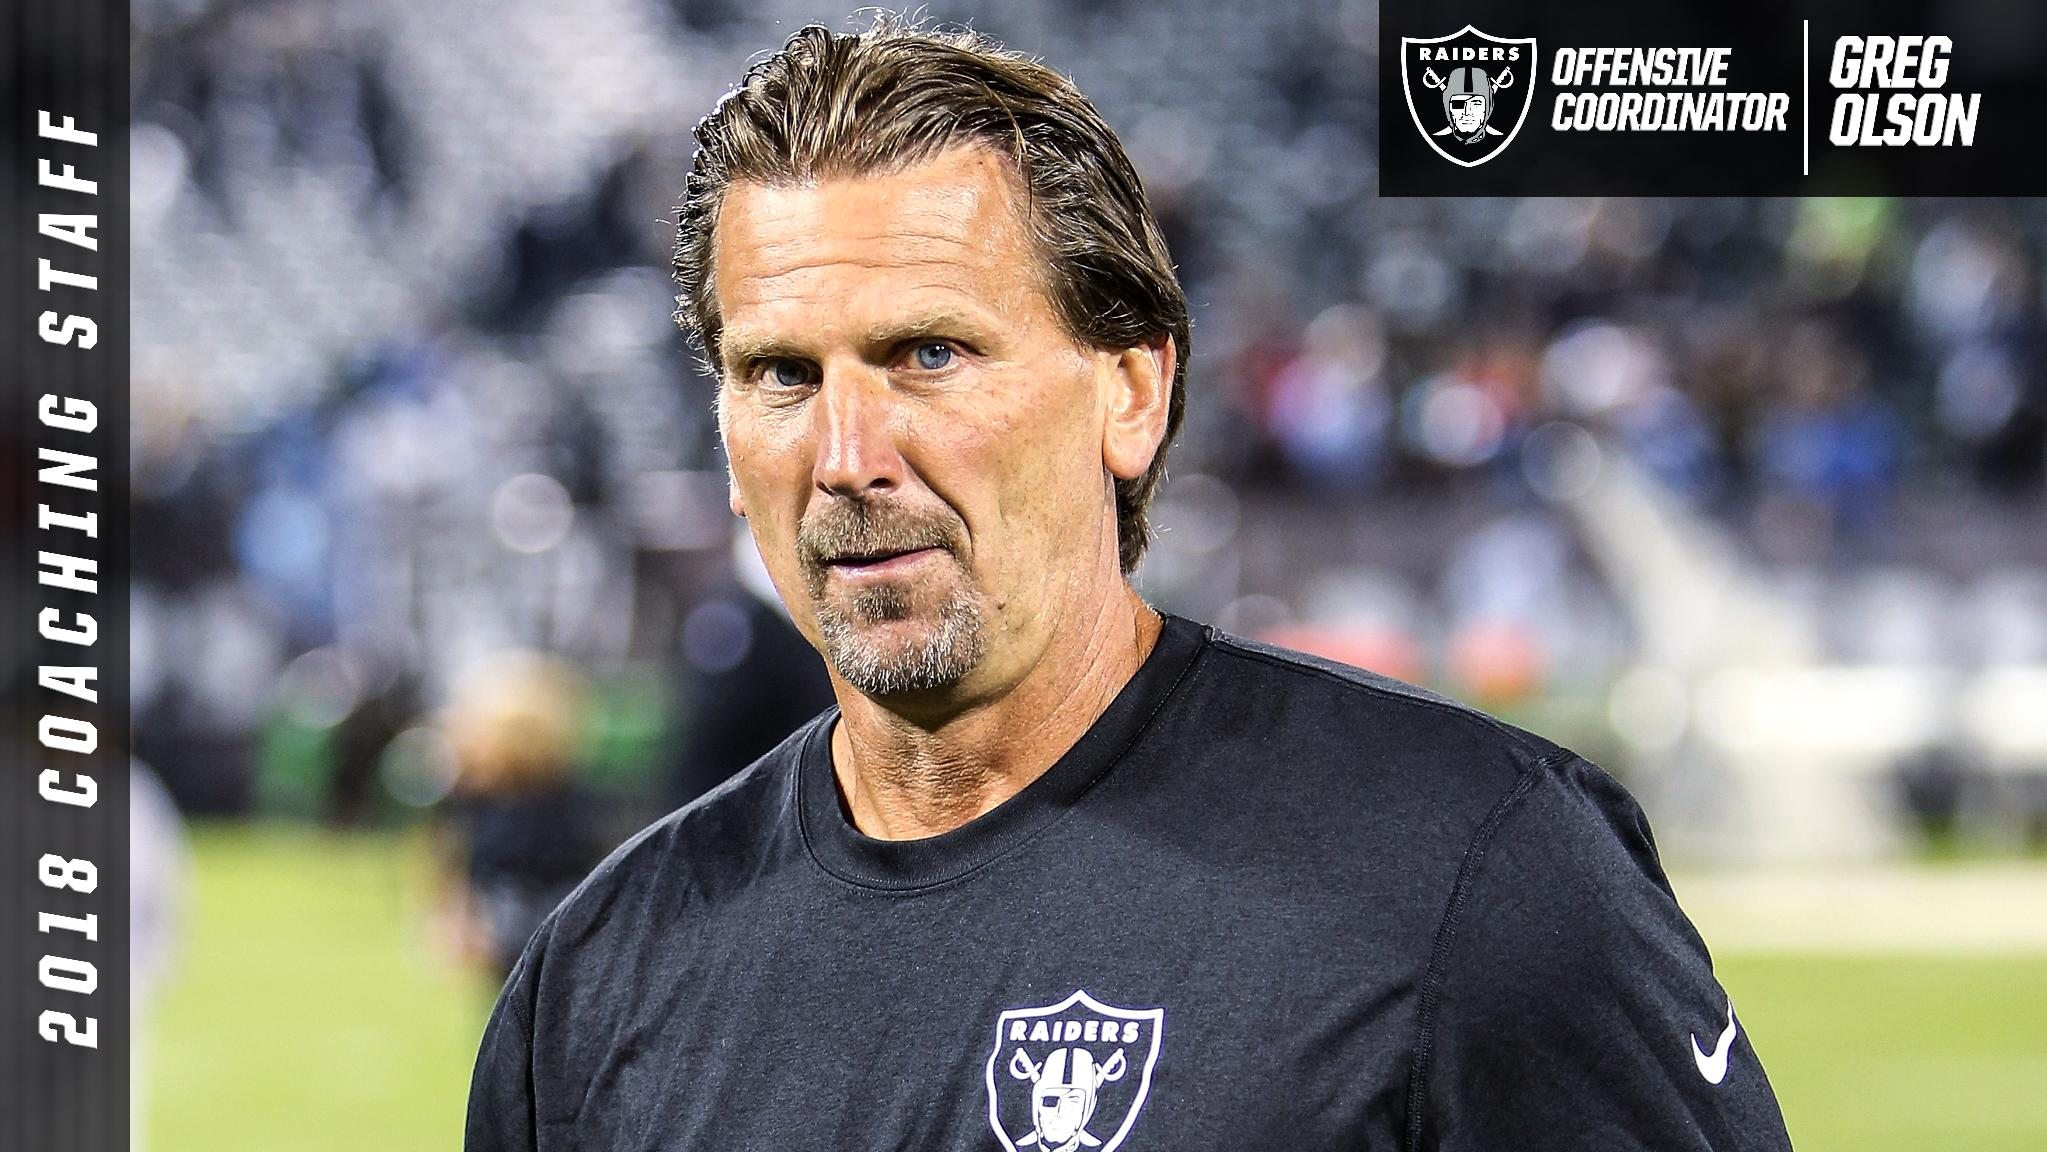 Raiders Name Greg Olson Offensive Coordinator